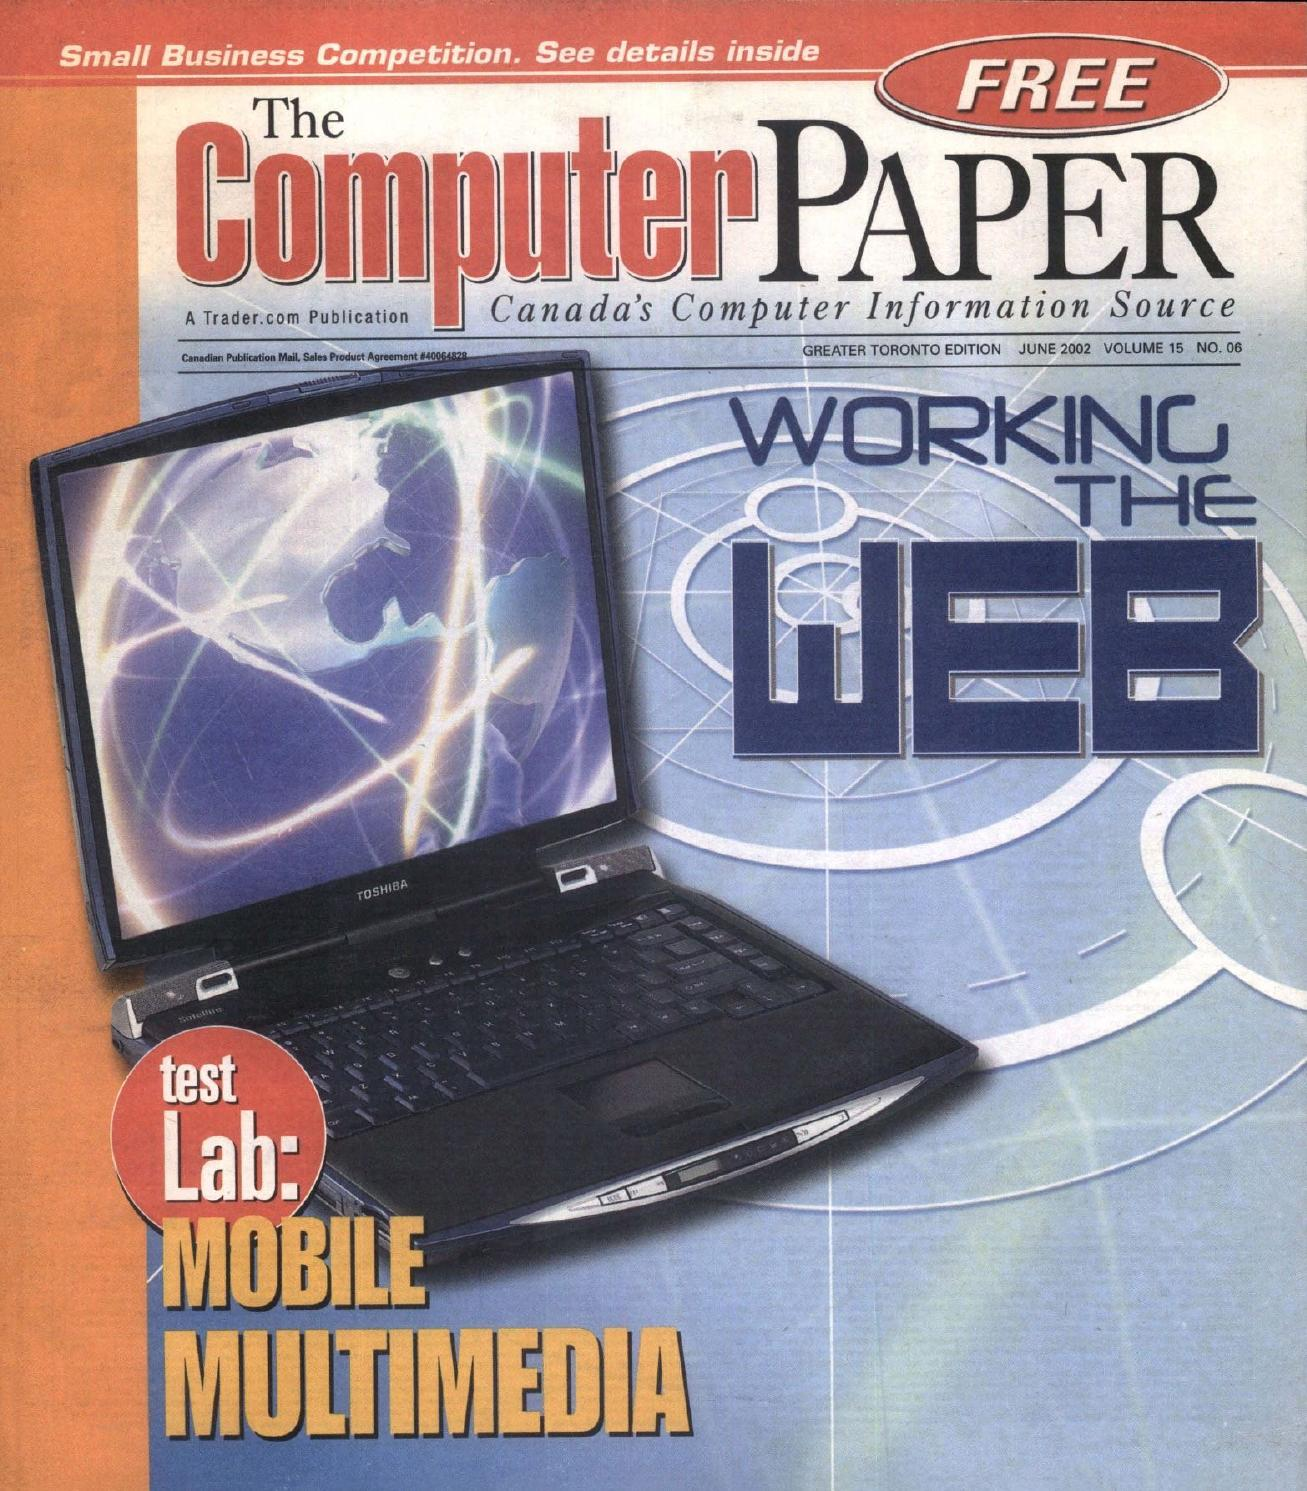 2002 07 The puter Paper tario Edition by The puter Paper issuu